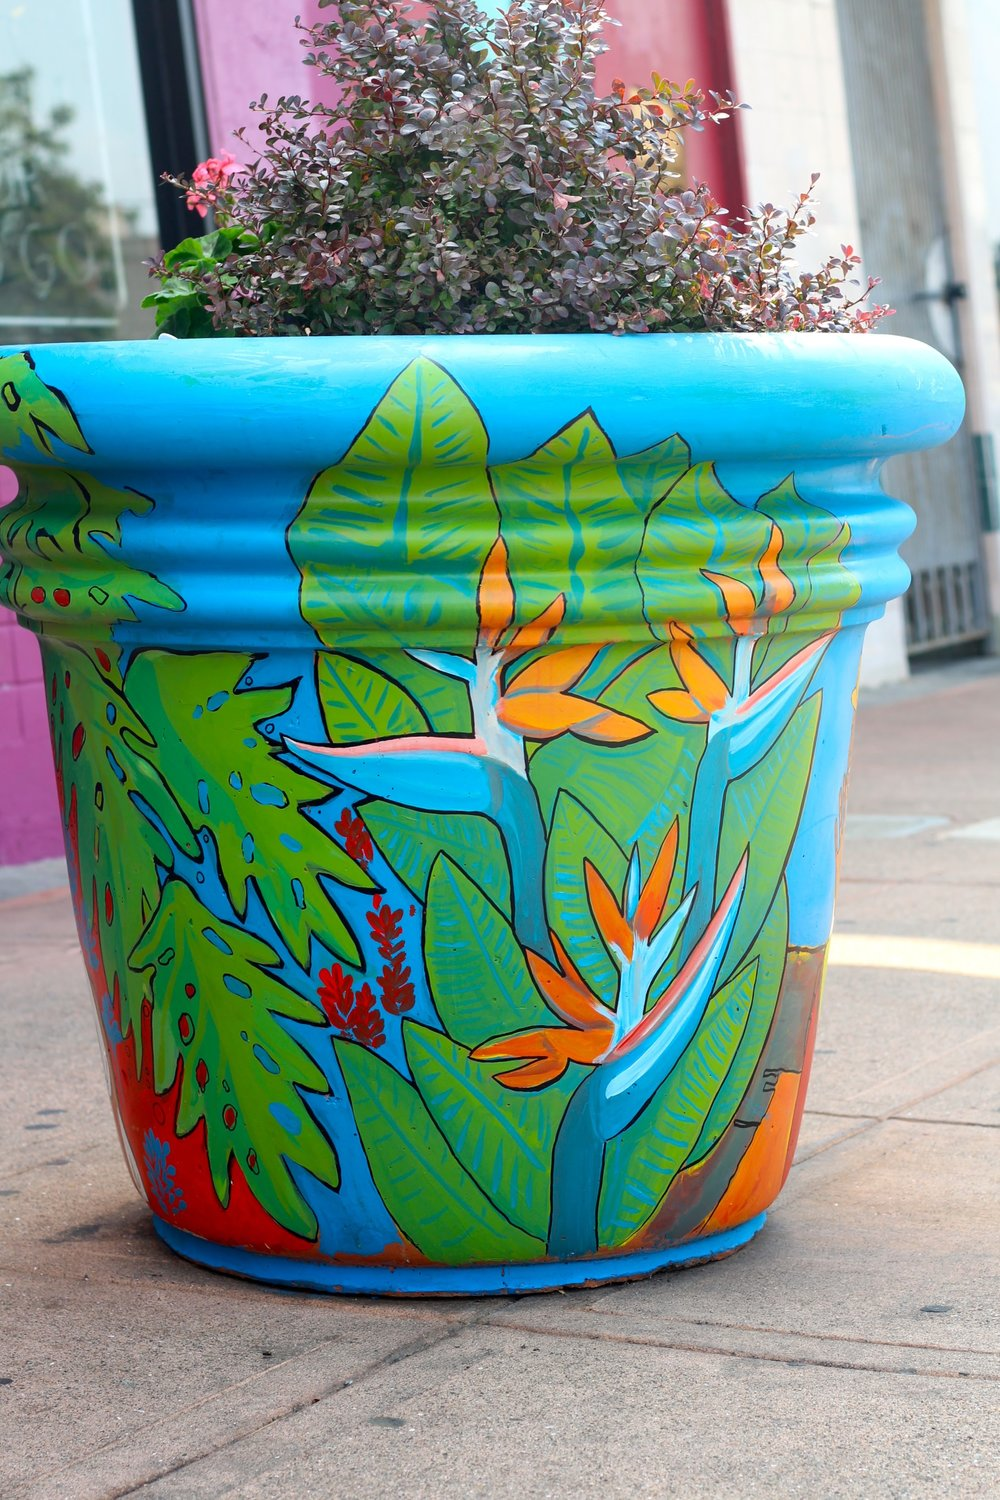 EastRand Studios planter mural project sponsored by the Laurel District Association, Oakland, CA, 2017